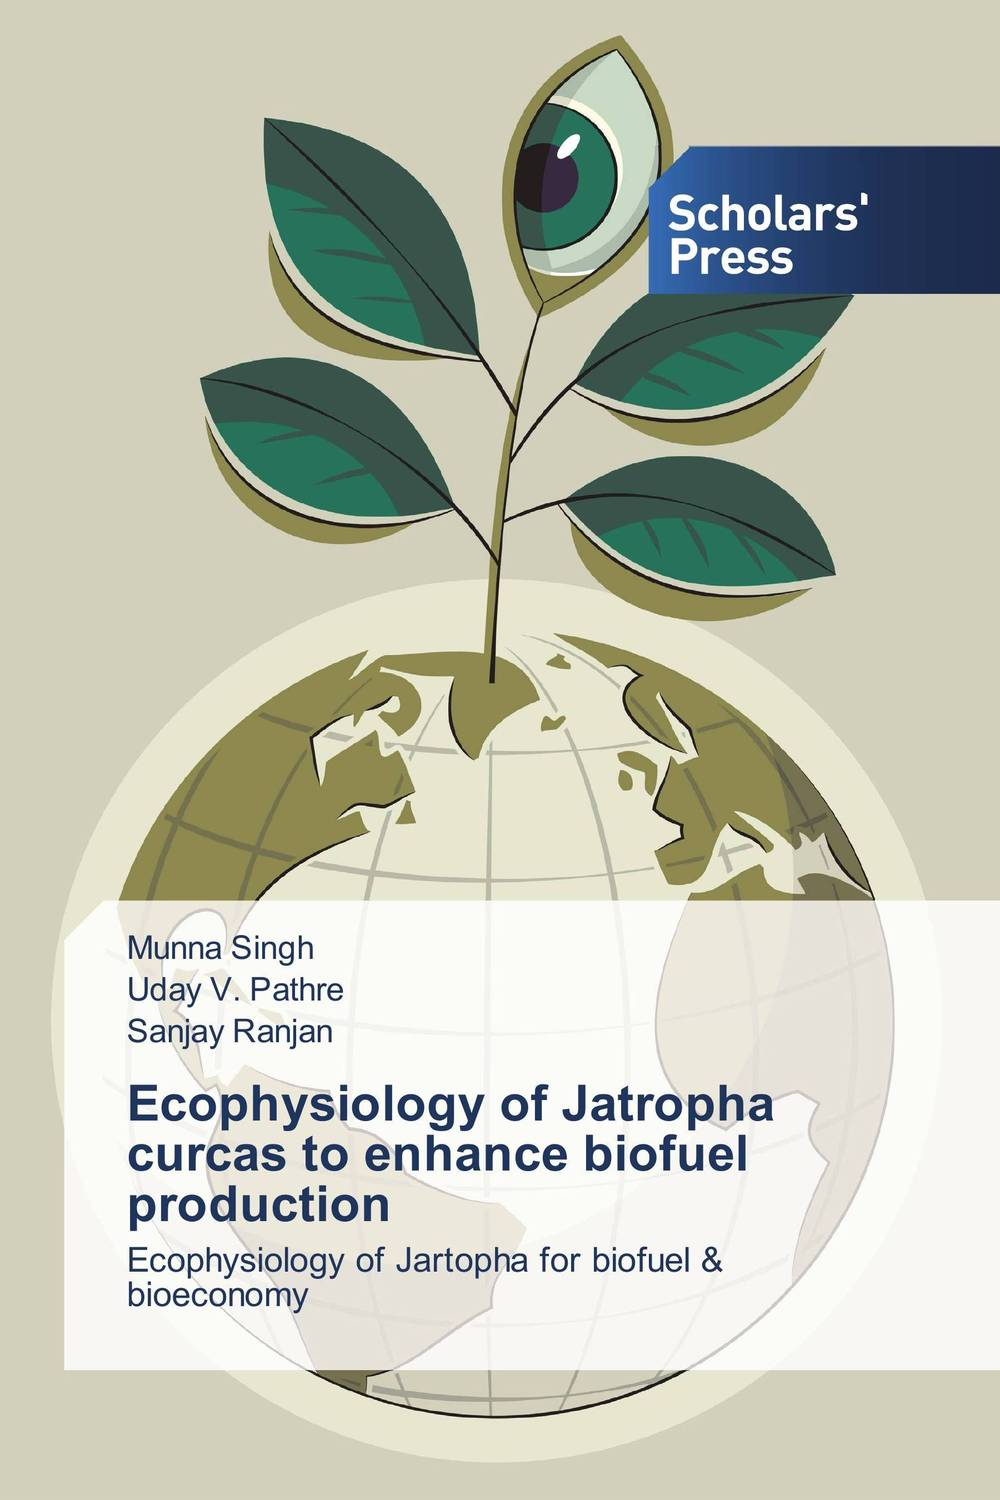 Ecophysiology of Jatropha curcas to enhance biofuel production ornamental plant production in recycled water